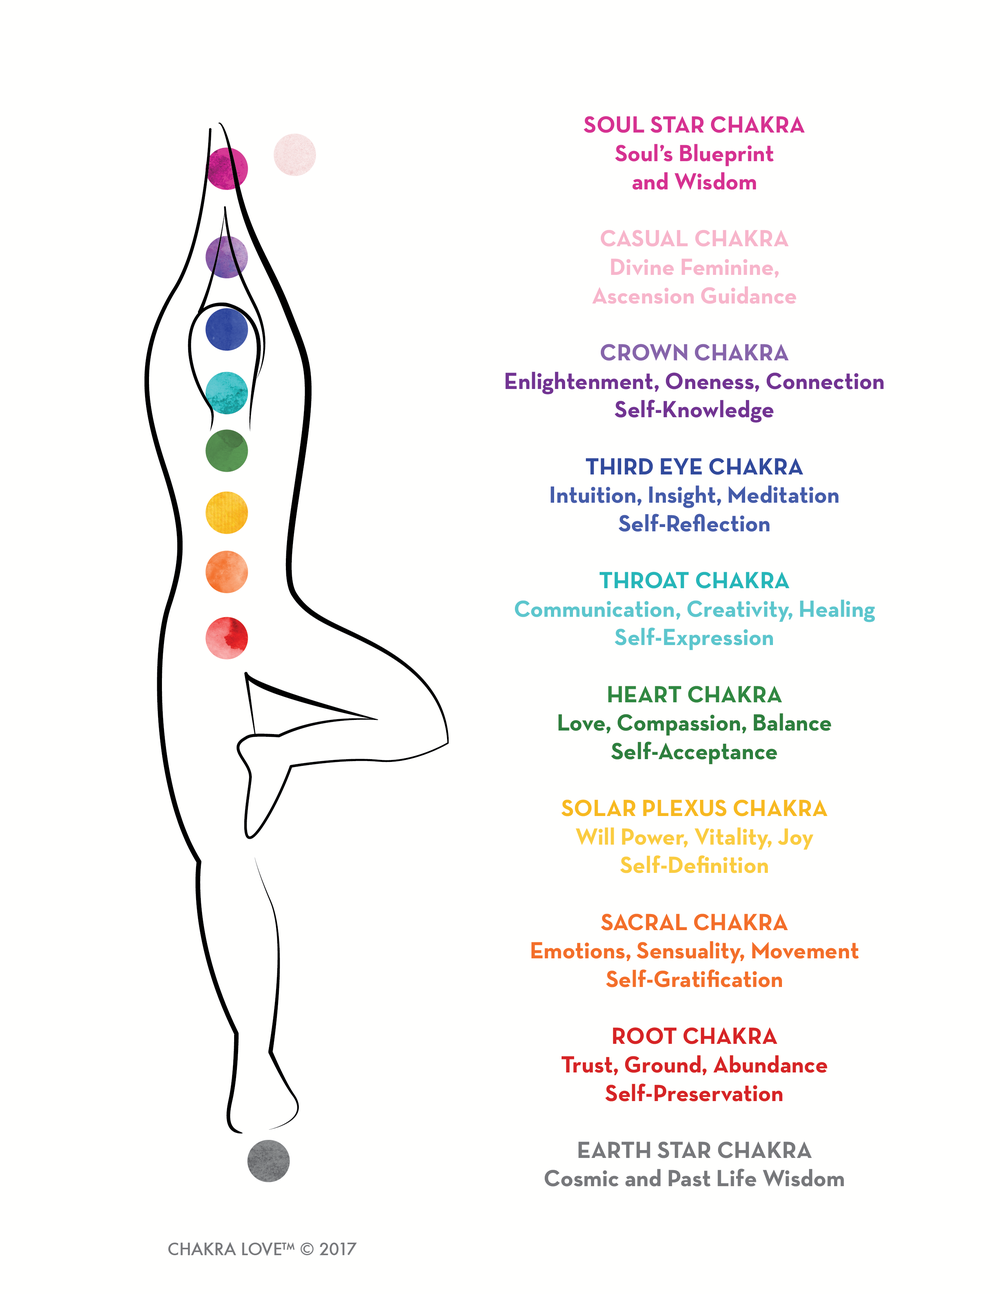 Learn more in our Chakra Love Basics book.